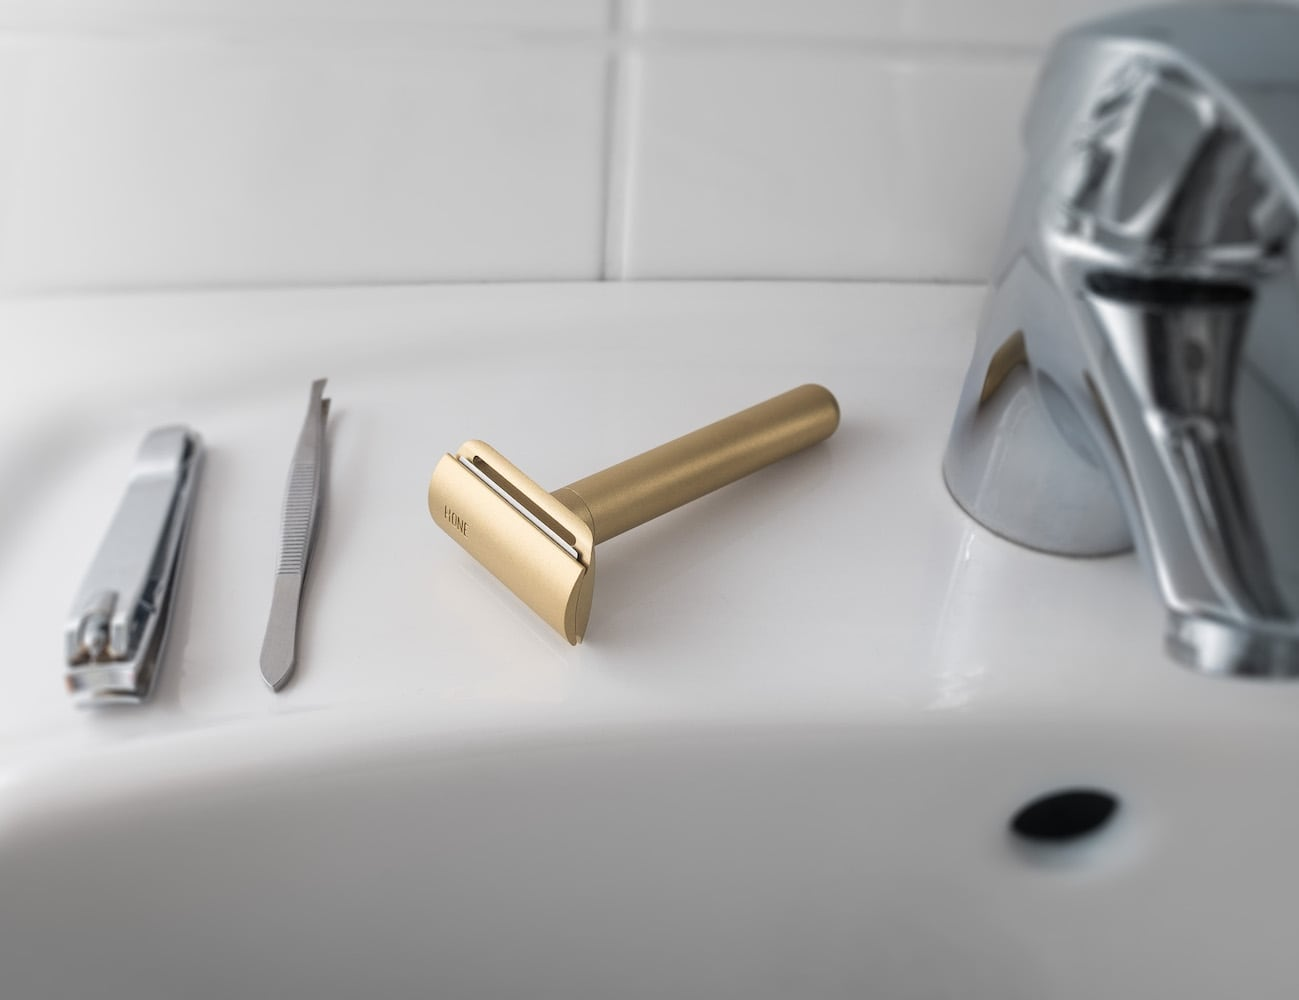 Hone Type 15 Golden Safety Razor adds style to your shaving routine